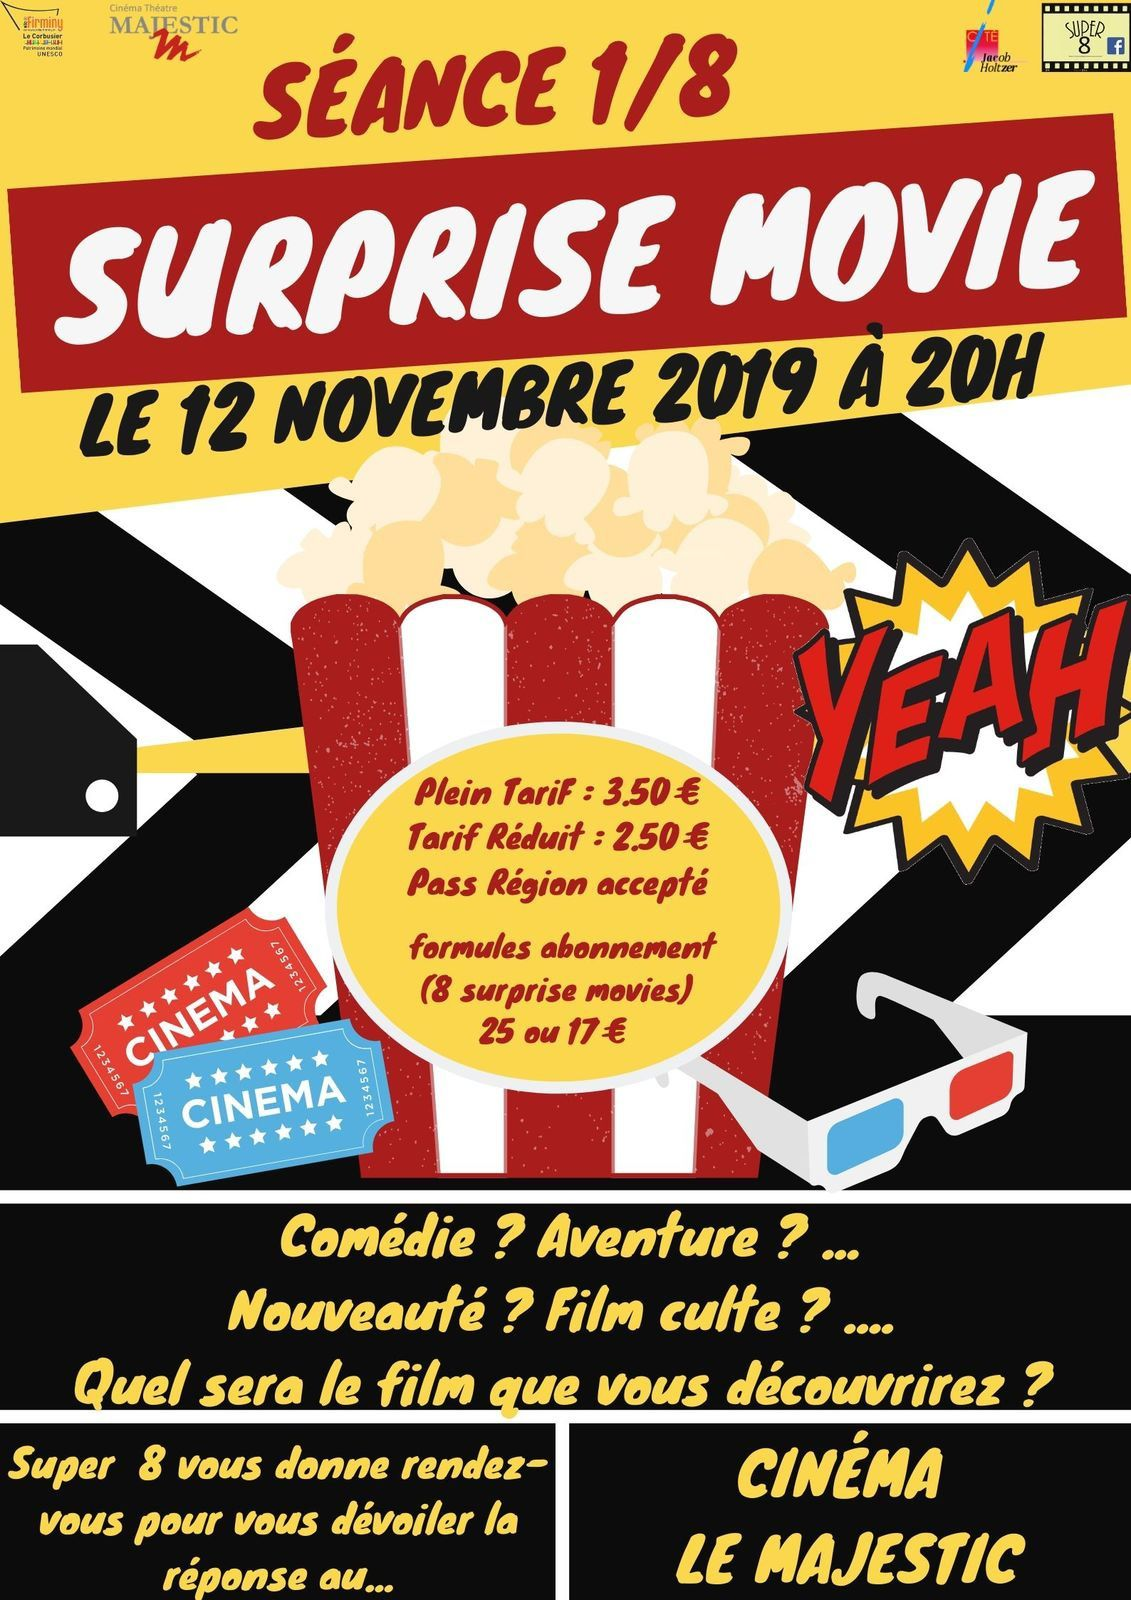 Surprise Movie : ça démarre le 12 novembre